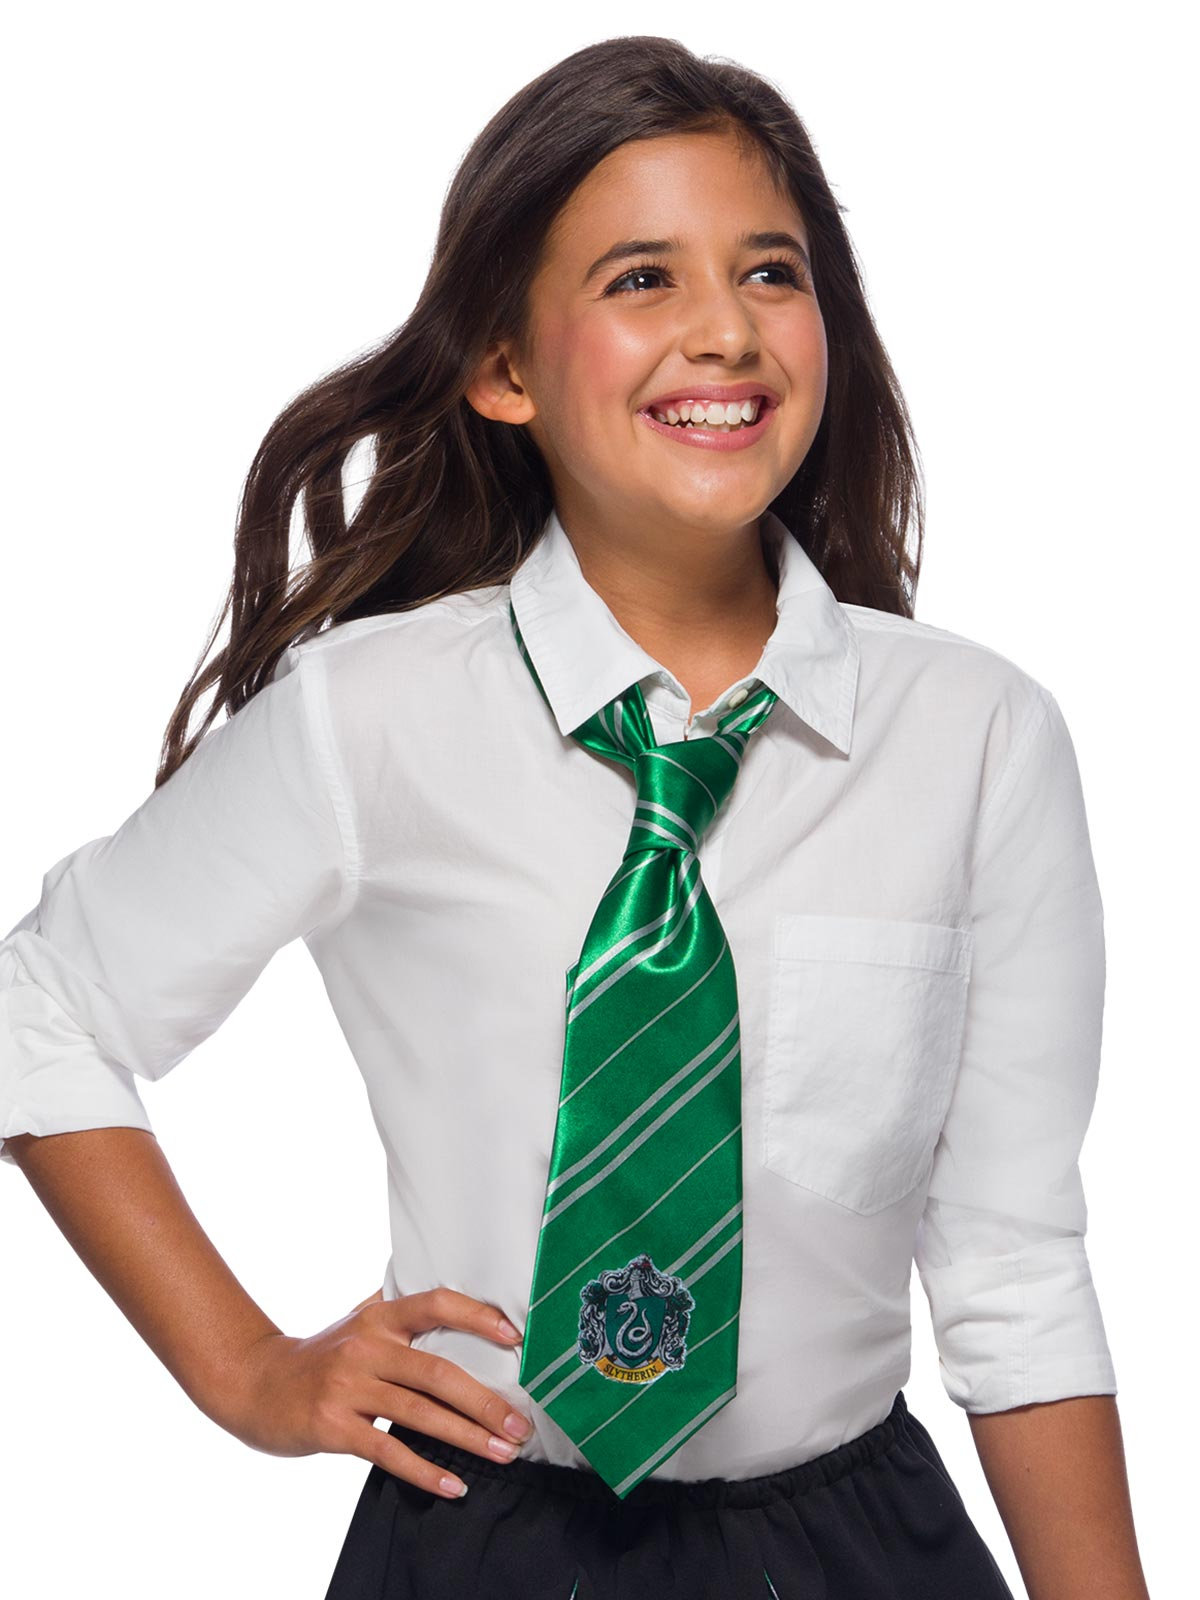 Harry Potter Slytherin House Tie - Buy Online Only